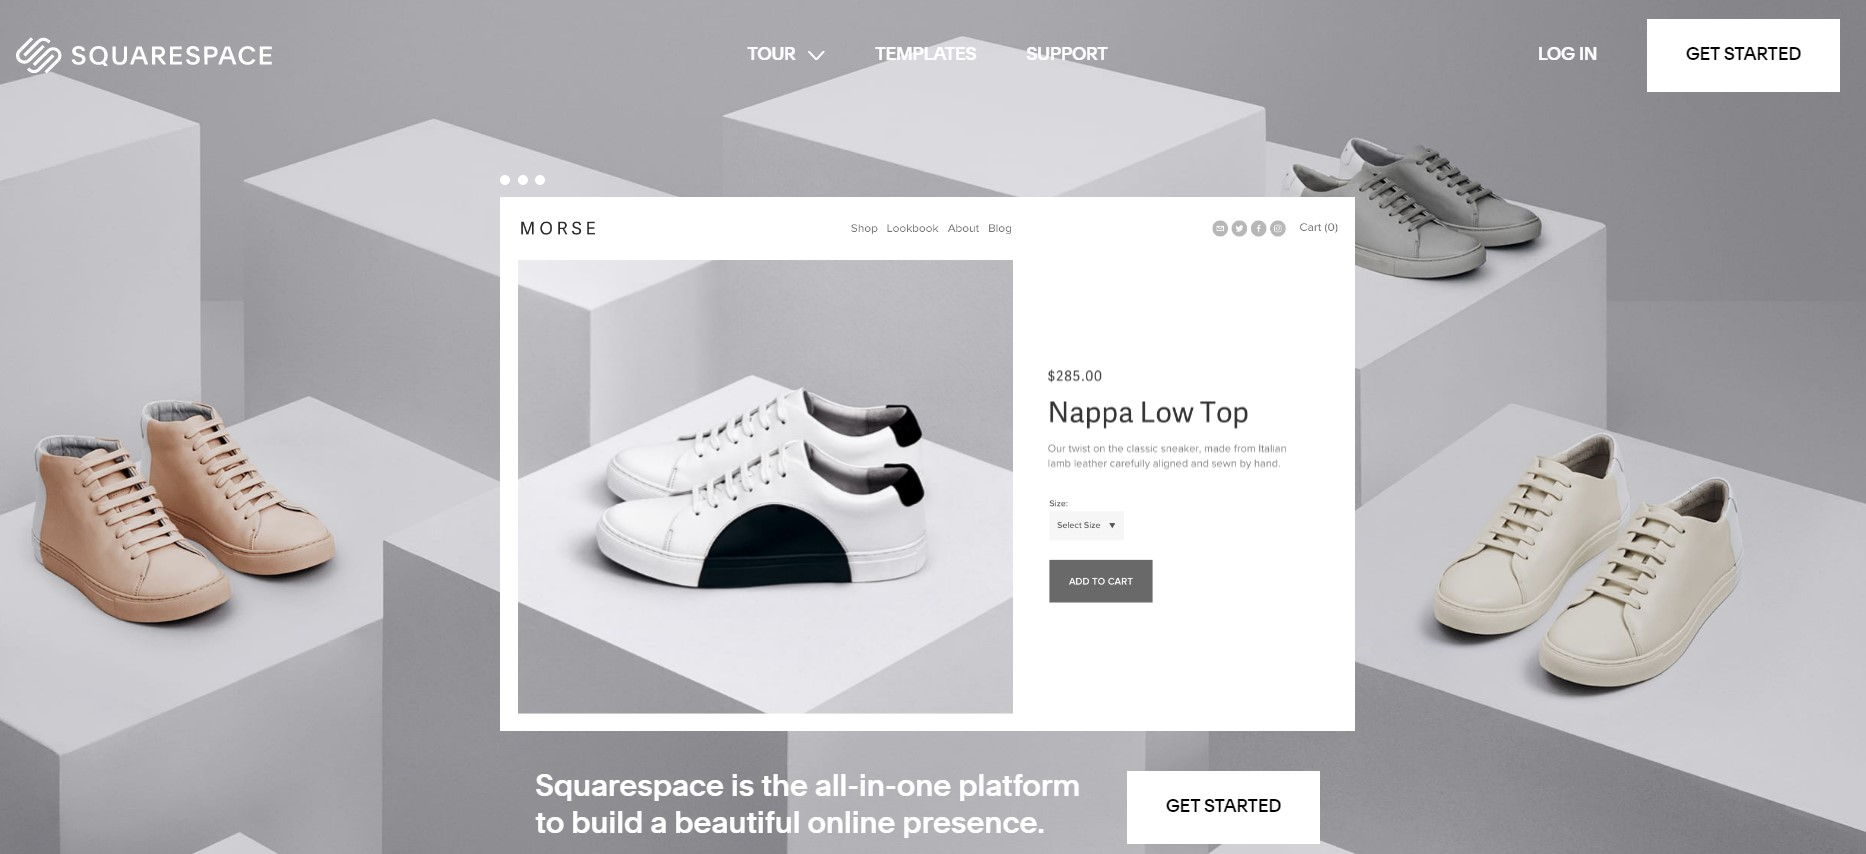 Squarespace has excellent visual details and for showing high-quality pictures